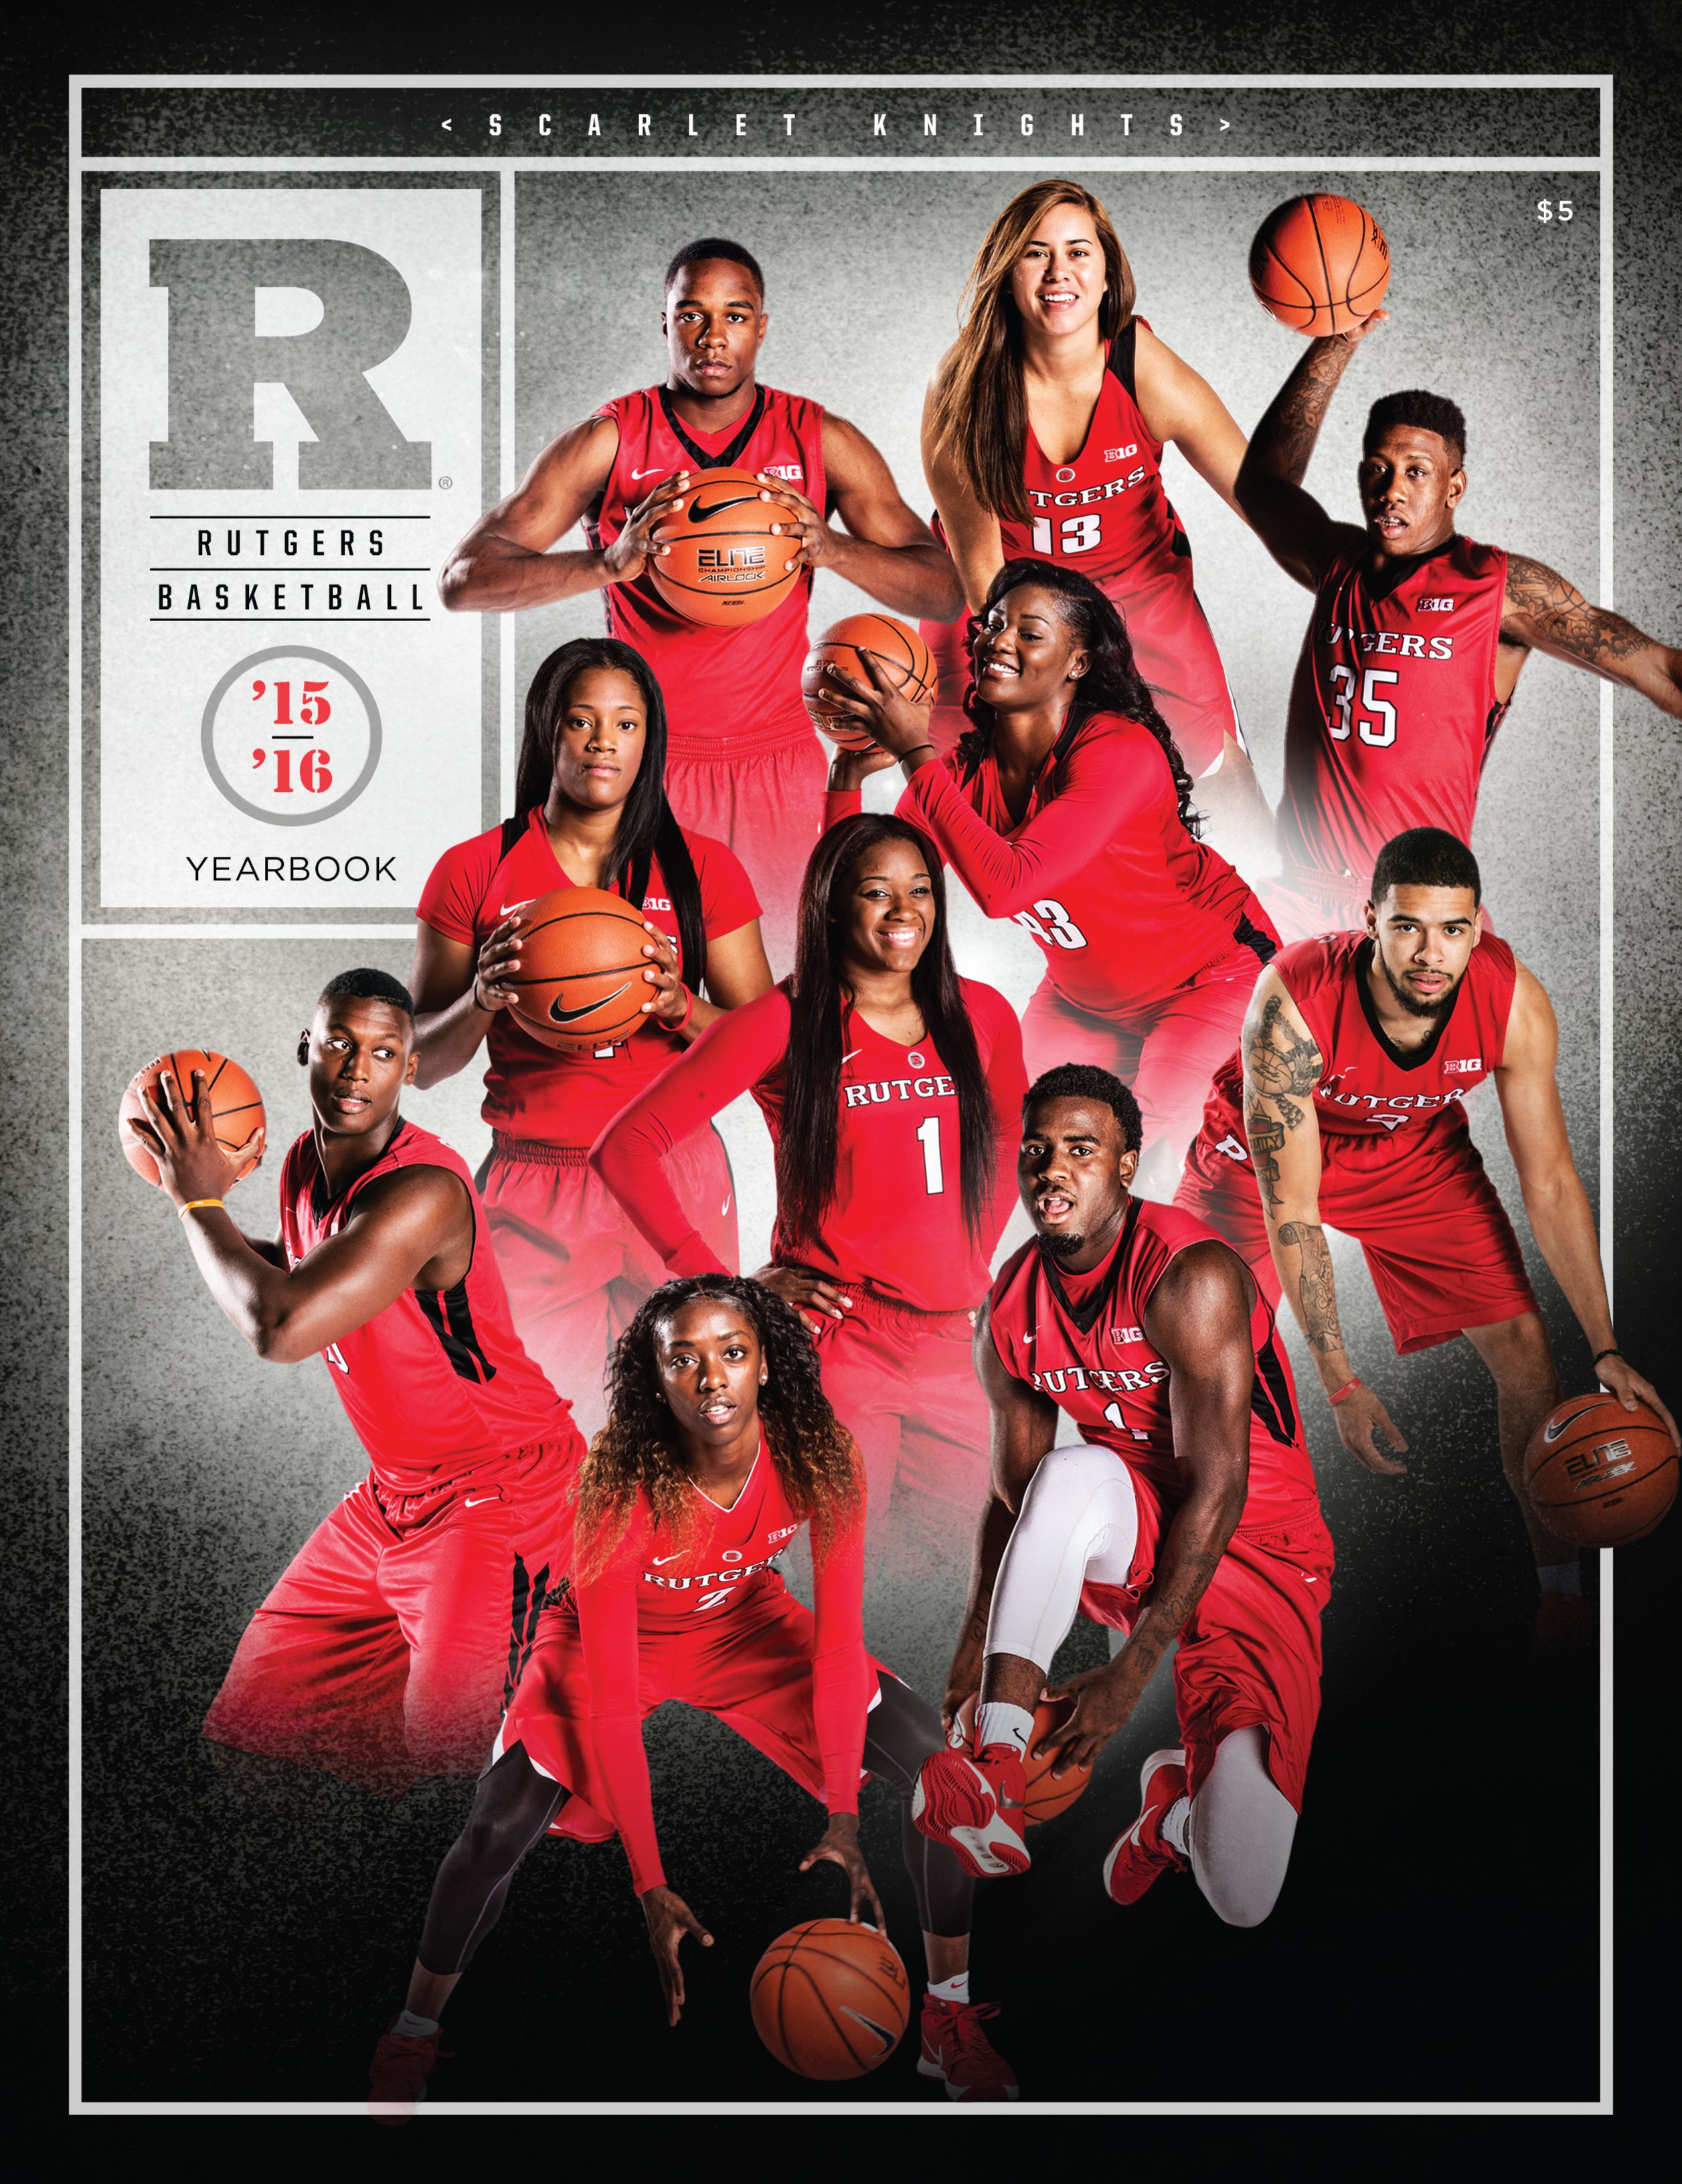 The 2015 16 Rutgers Scarlett Knights Men S And Women S Basketball Yearbook Womens Basketball Rutgers Scarlet Knights Yearbook